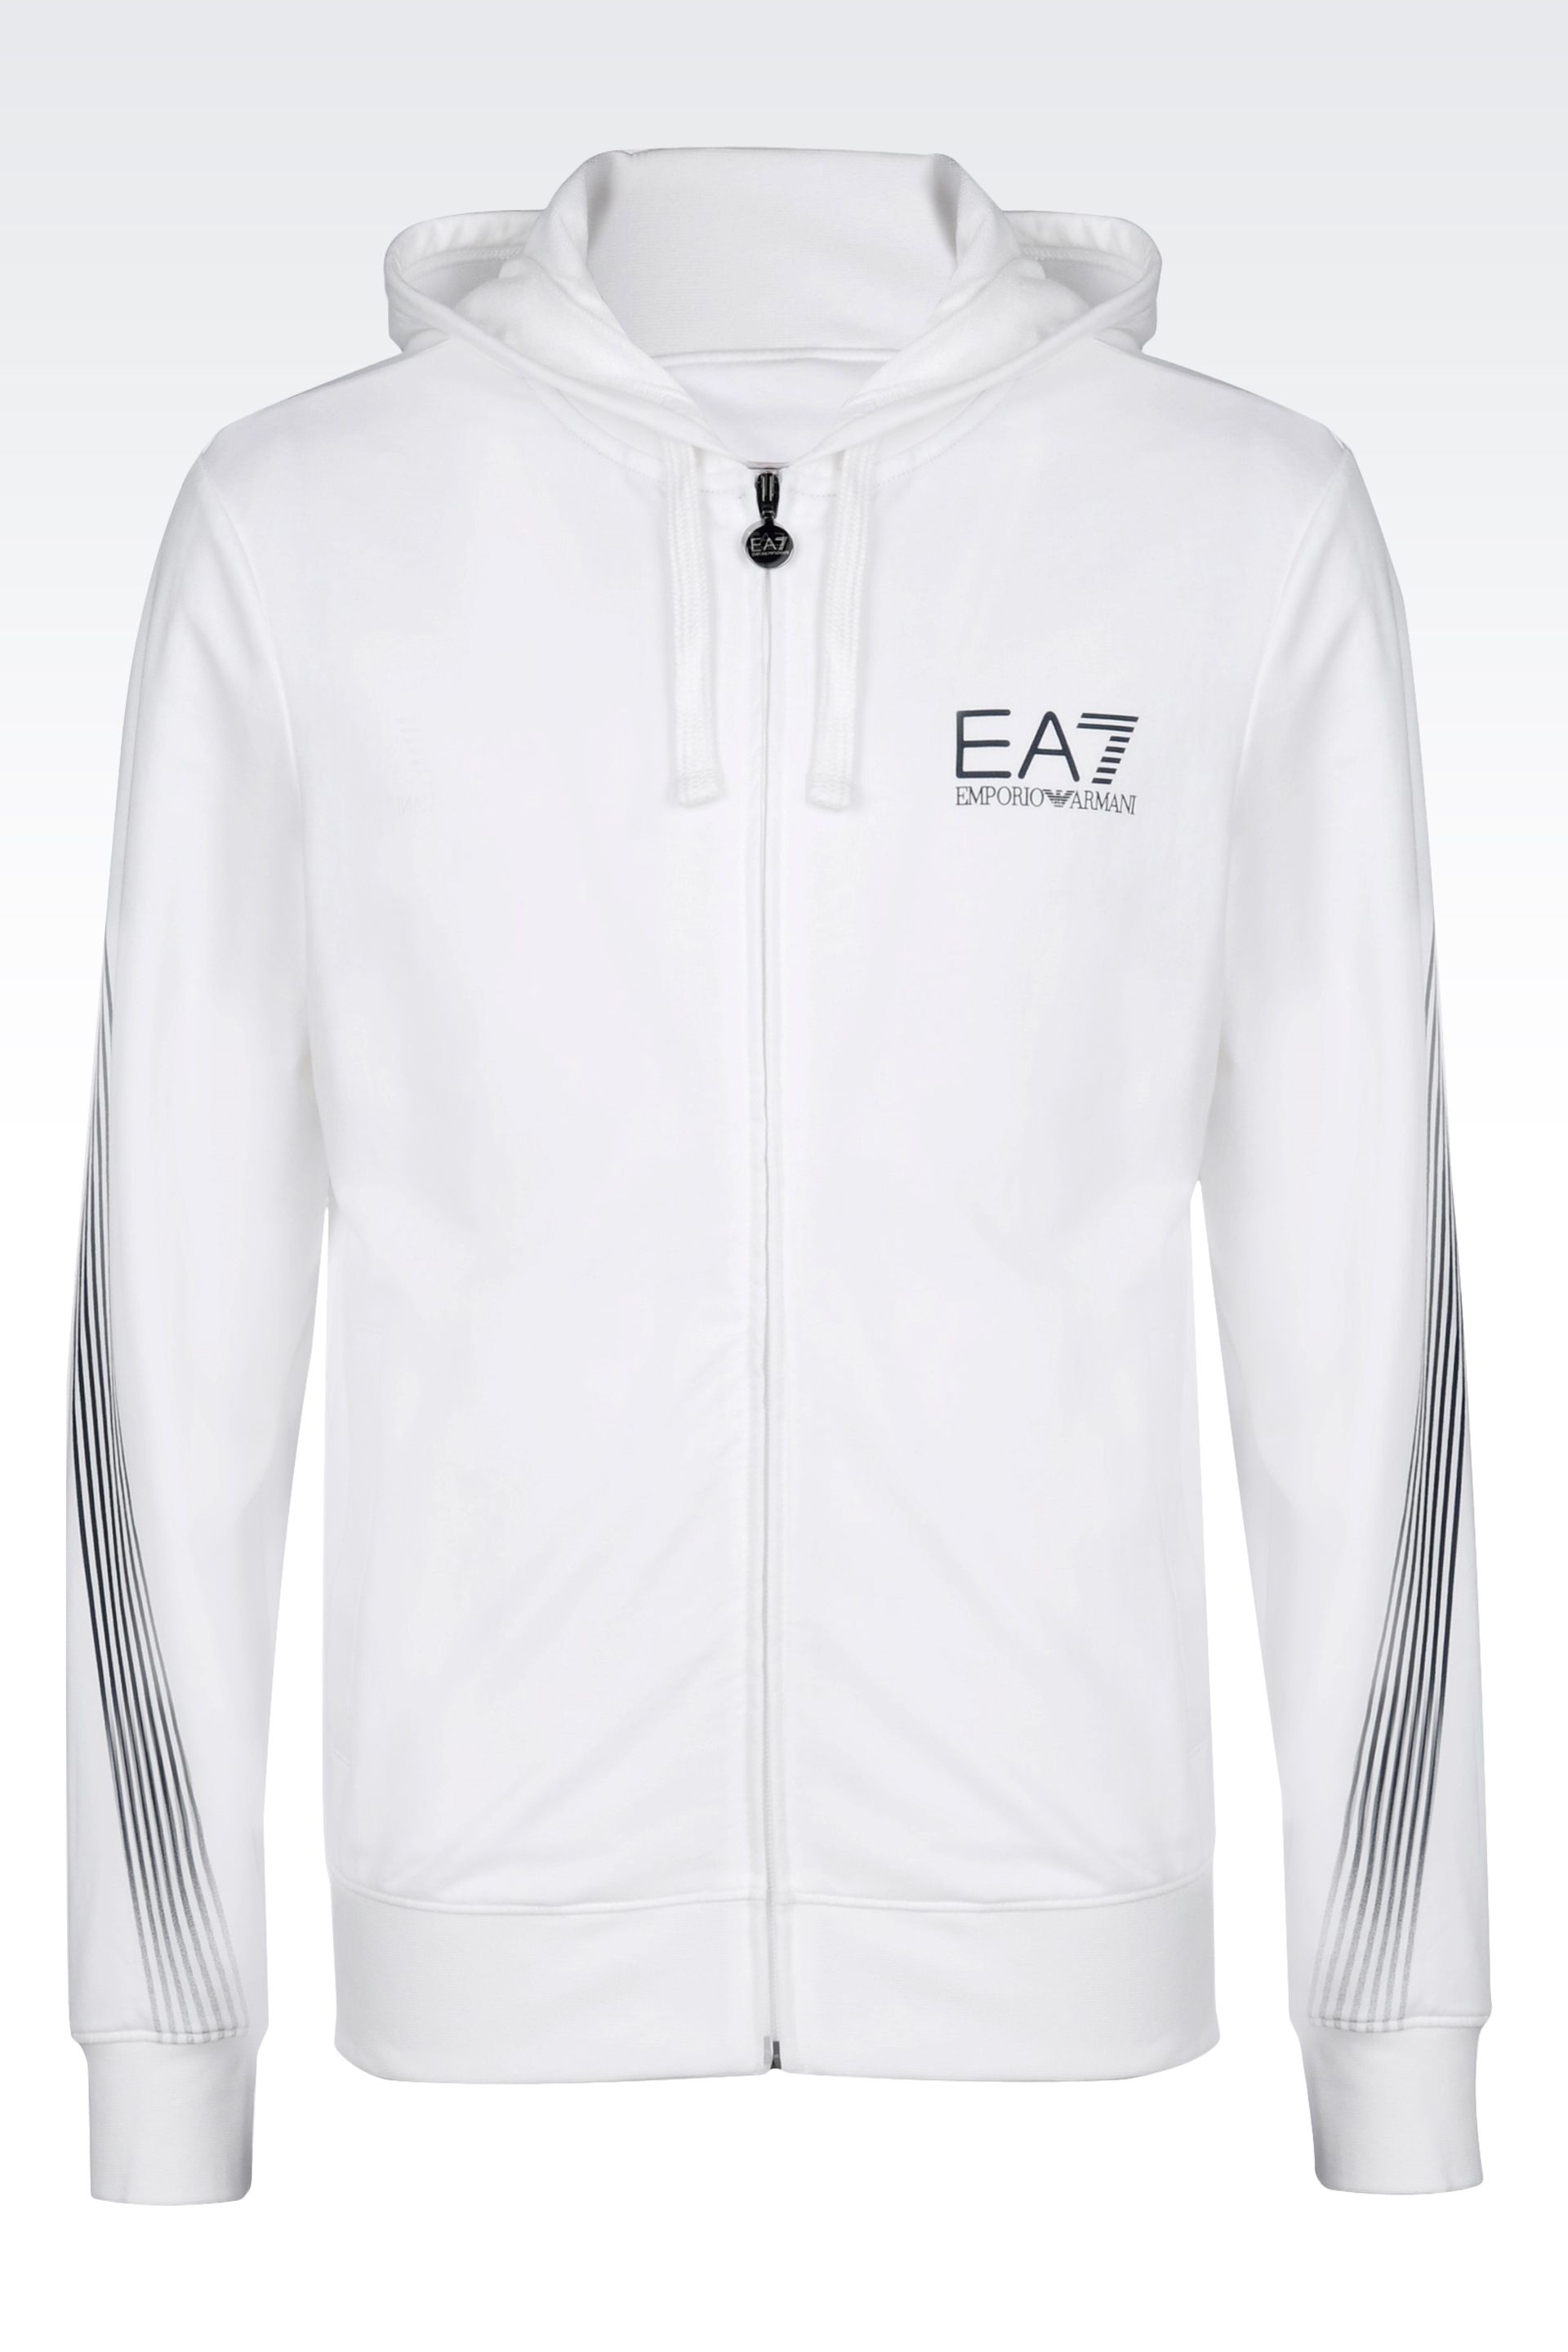 Ea7 t shirt white - Gallery